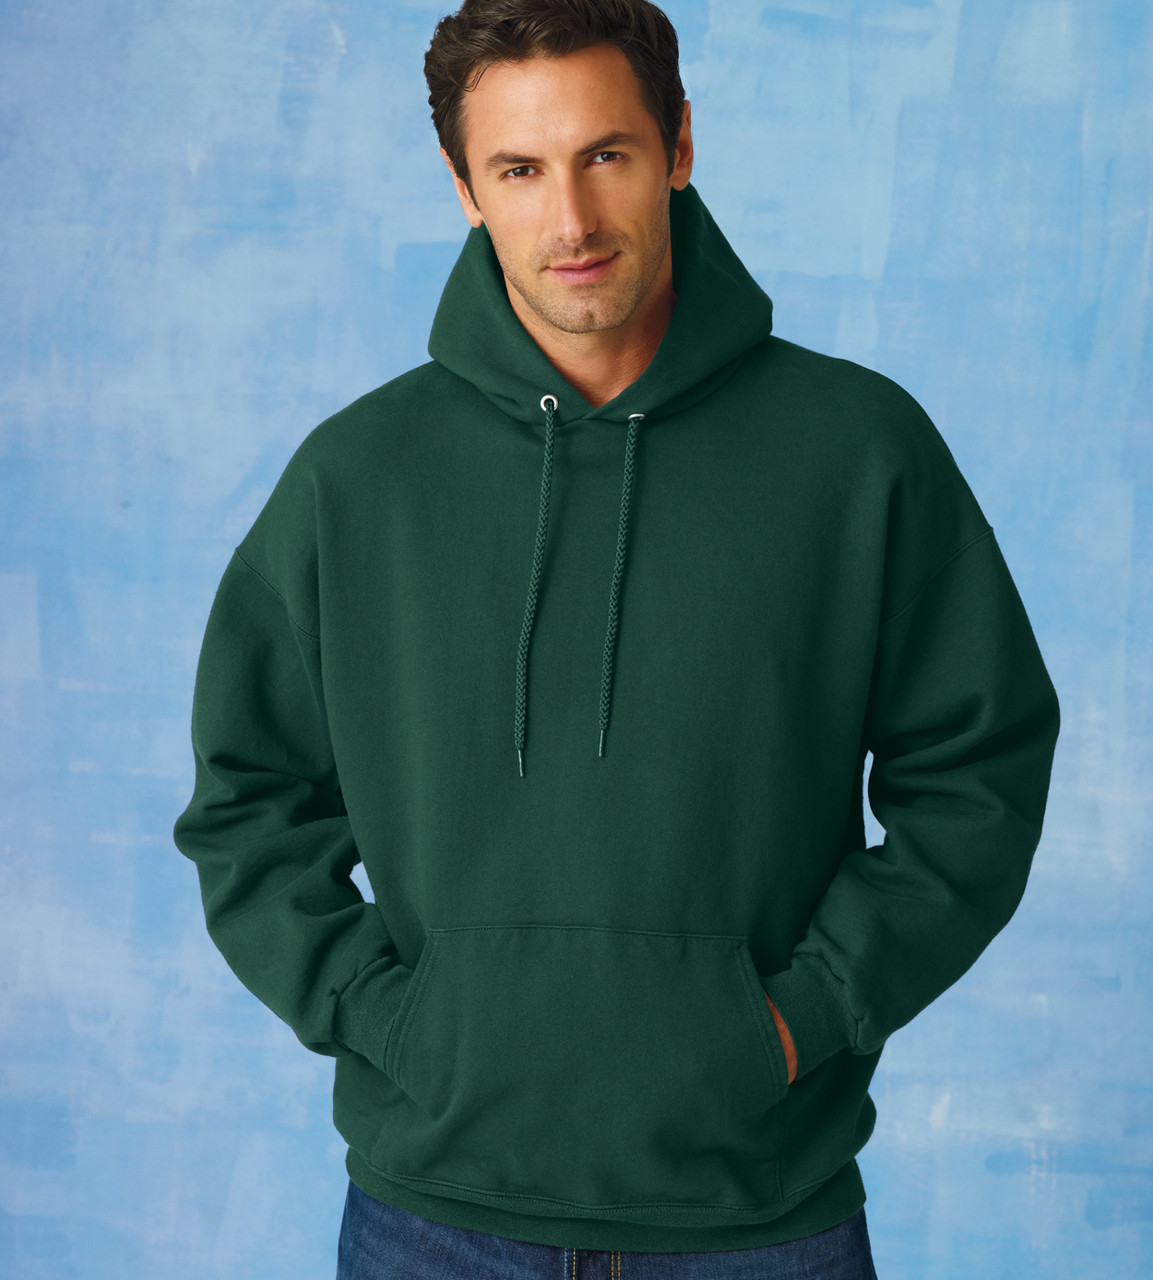 F170 Hanes Adult Ultimate Cotton Hooded Pullover Sweatshirt ... 09698fe9f